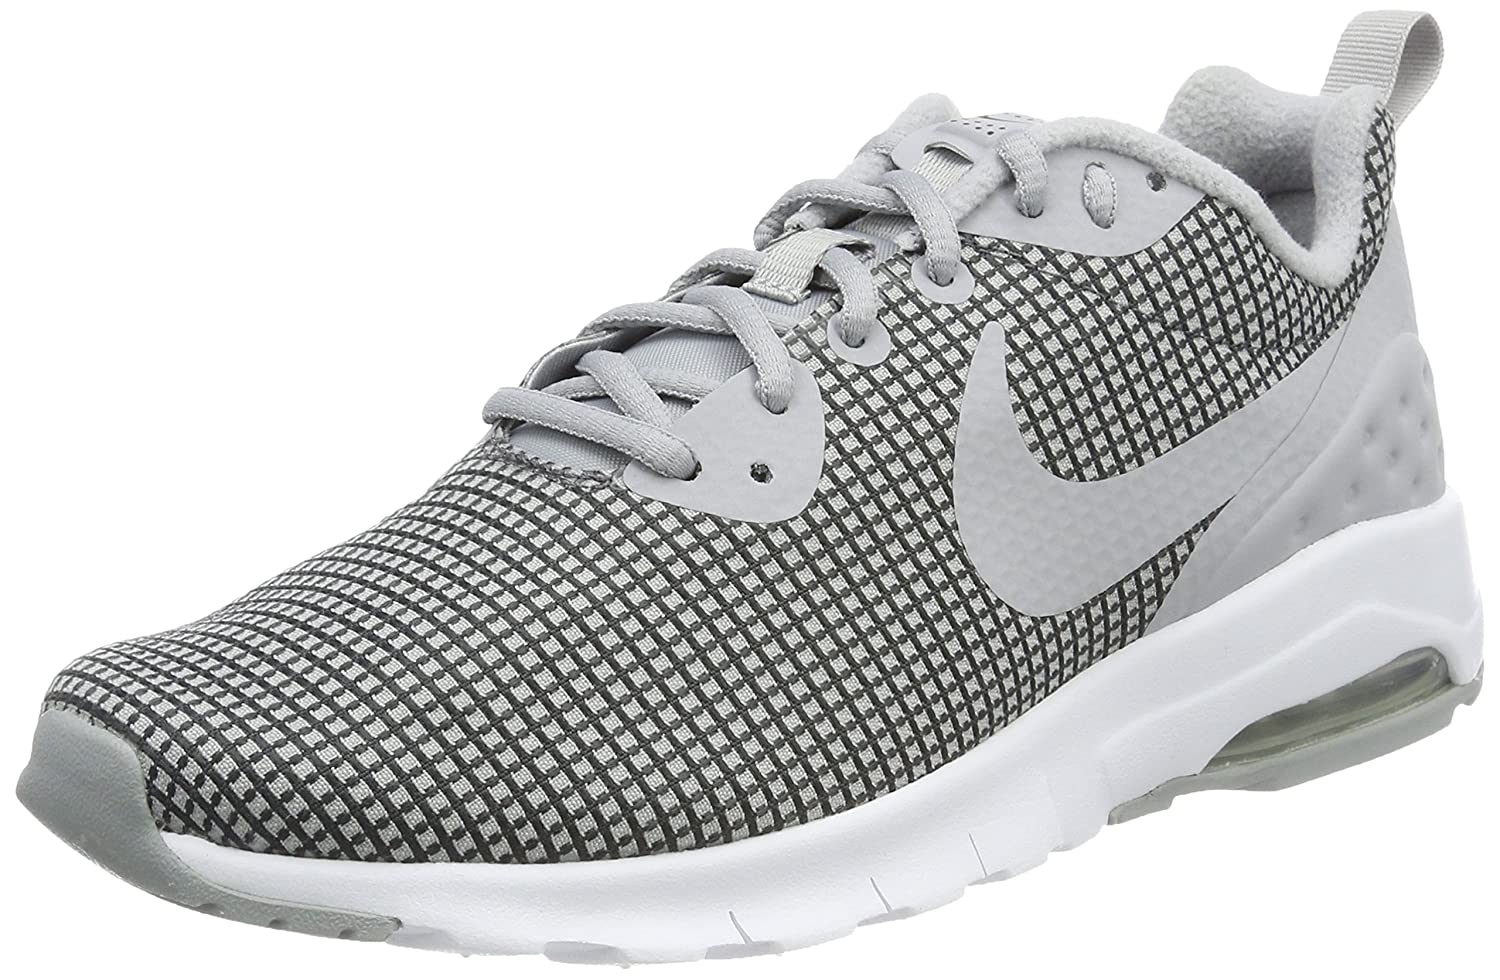 Nike Hommes Air Max Motion Low Cross Trainer Dark Gris/Wolf Gris anthracite Populaire et pas cher 01O469